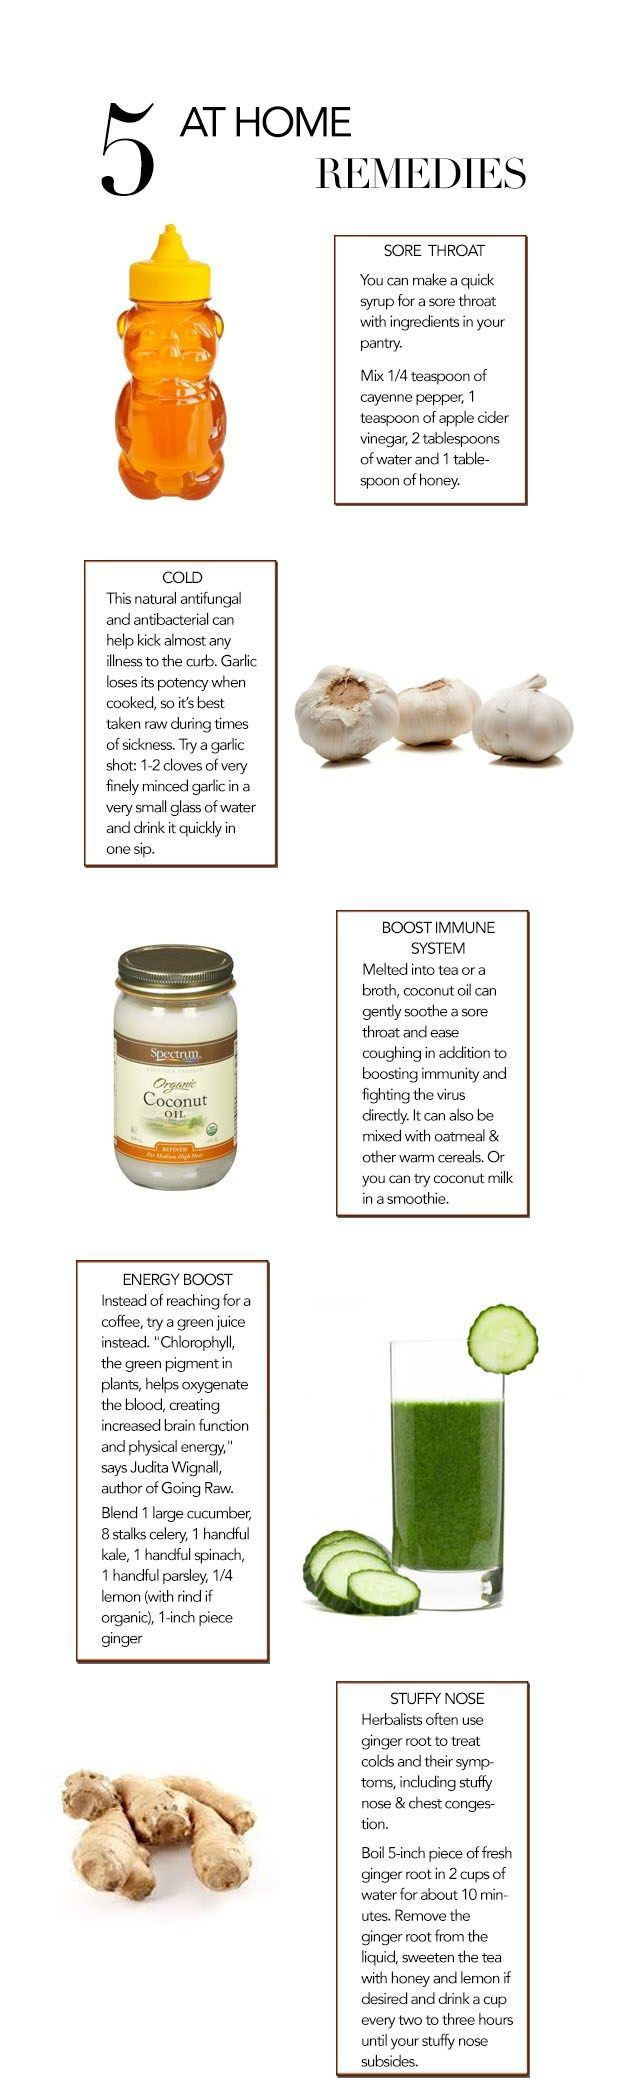 At Home Remedies: